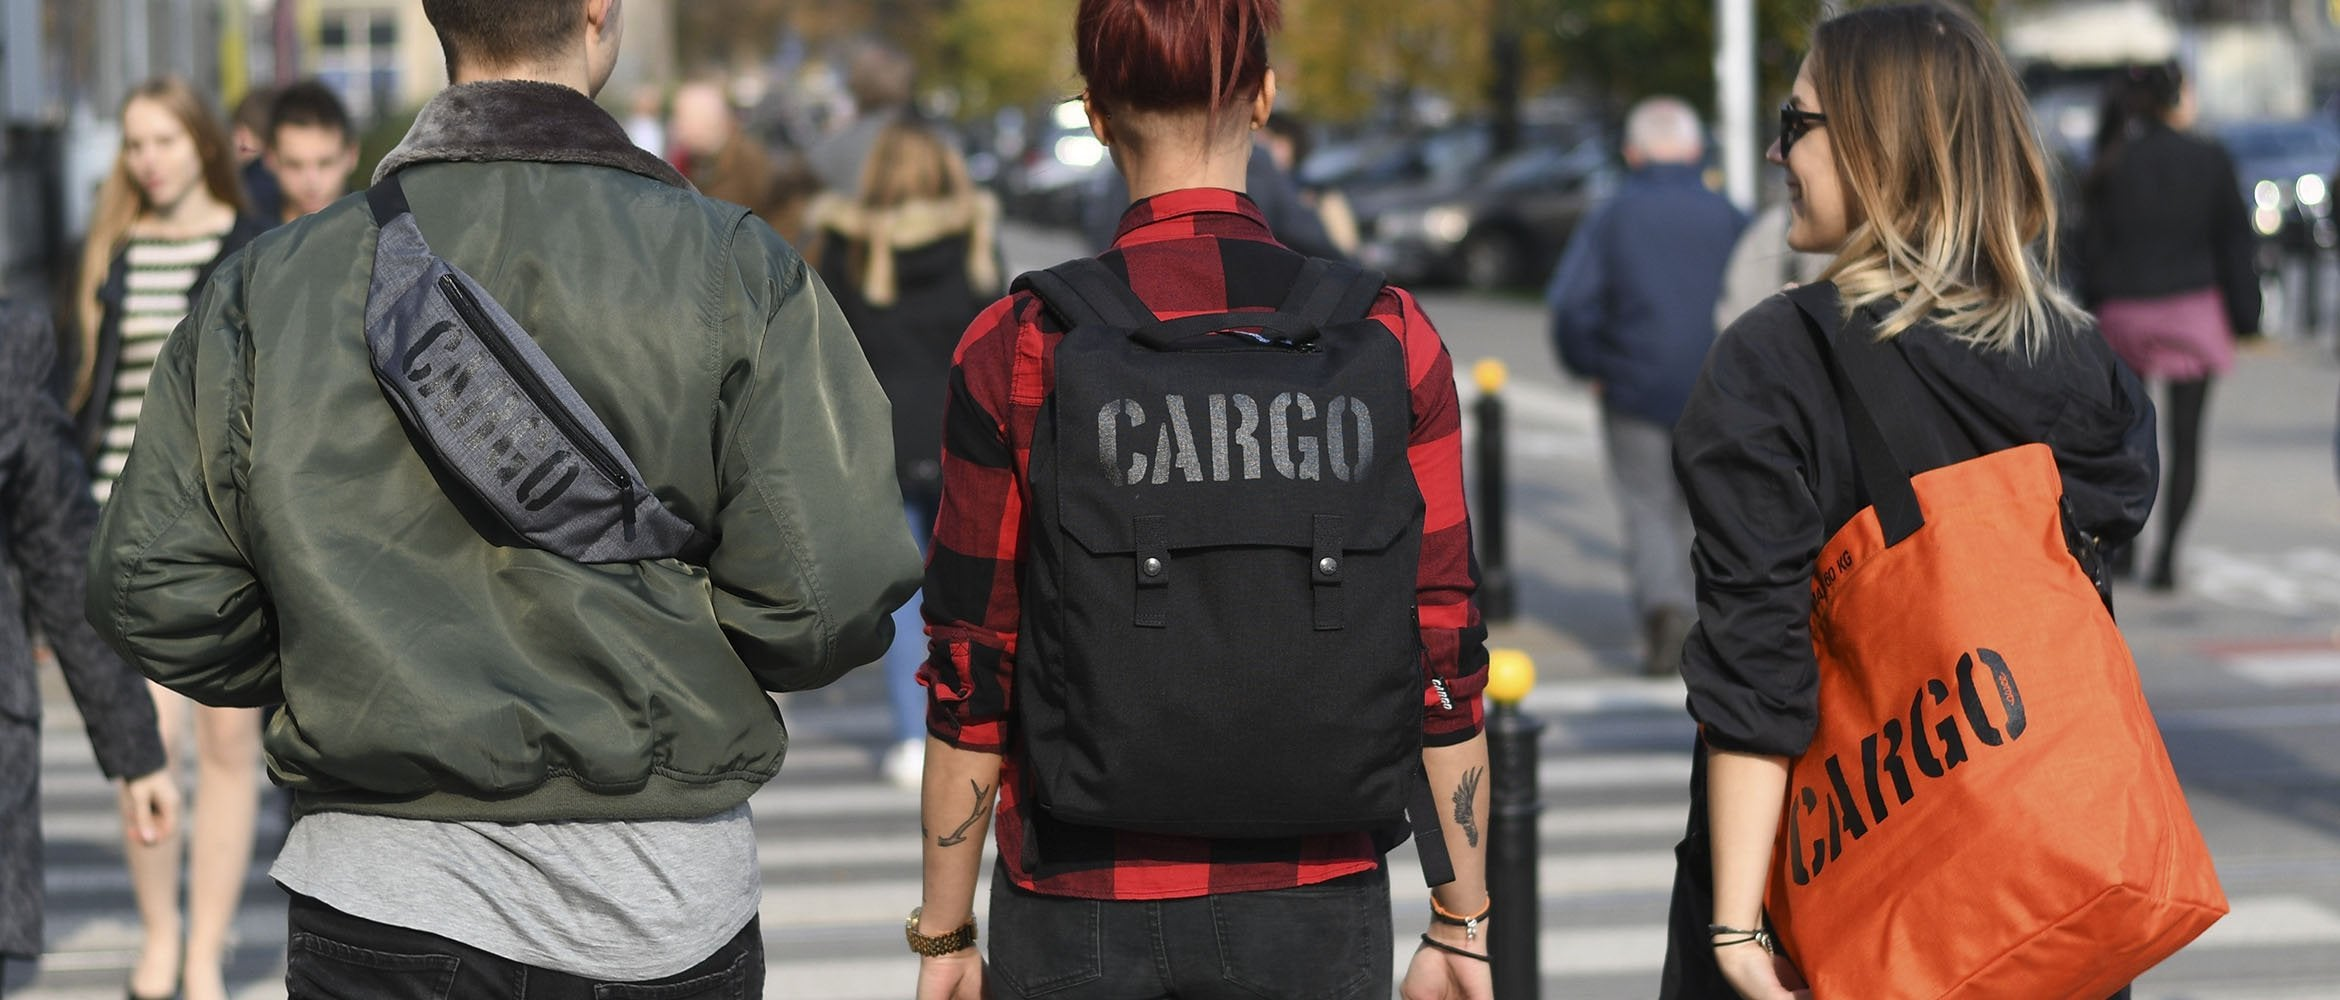 CARGO by OWEE | The Brand Story | WildBounds